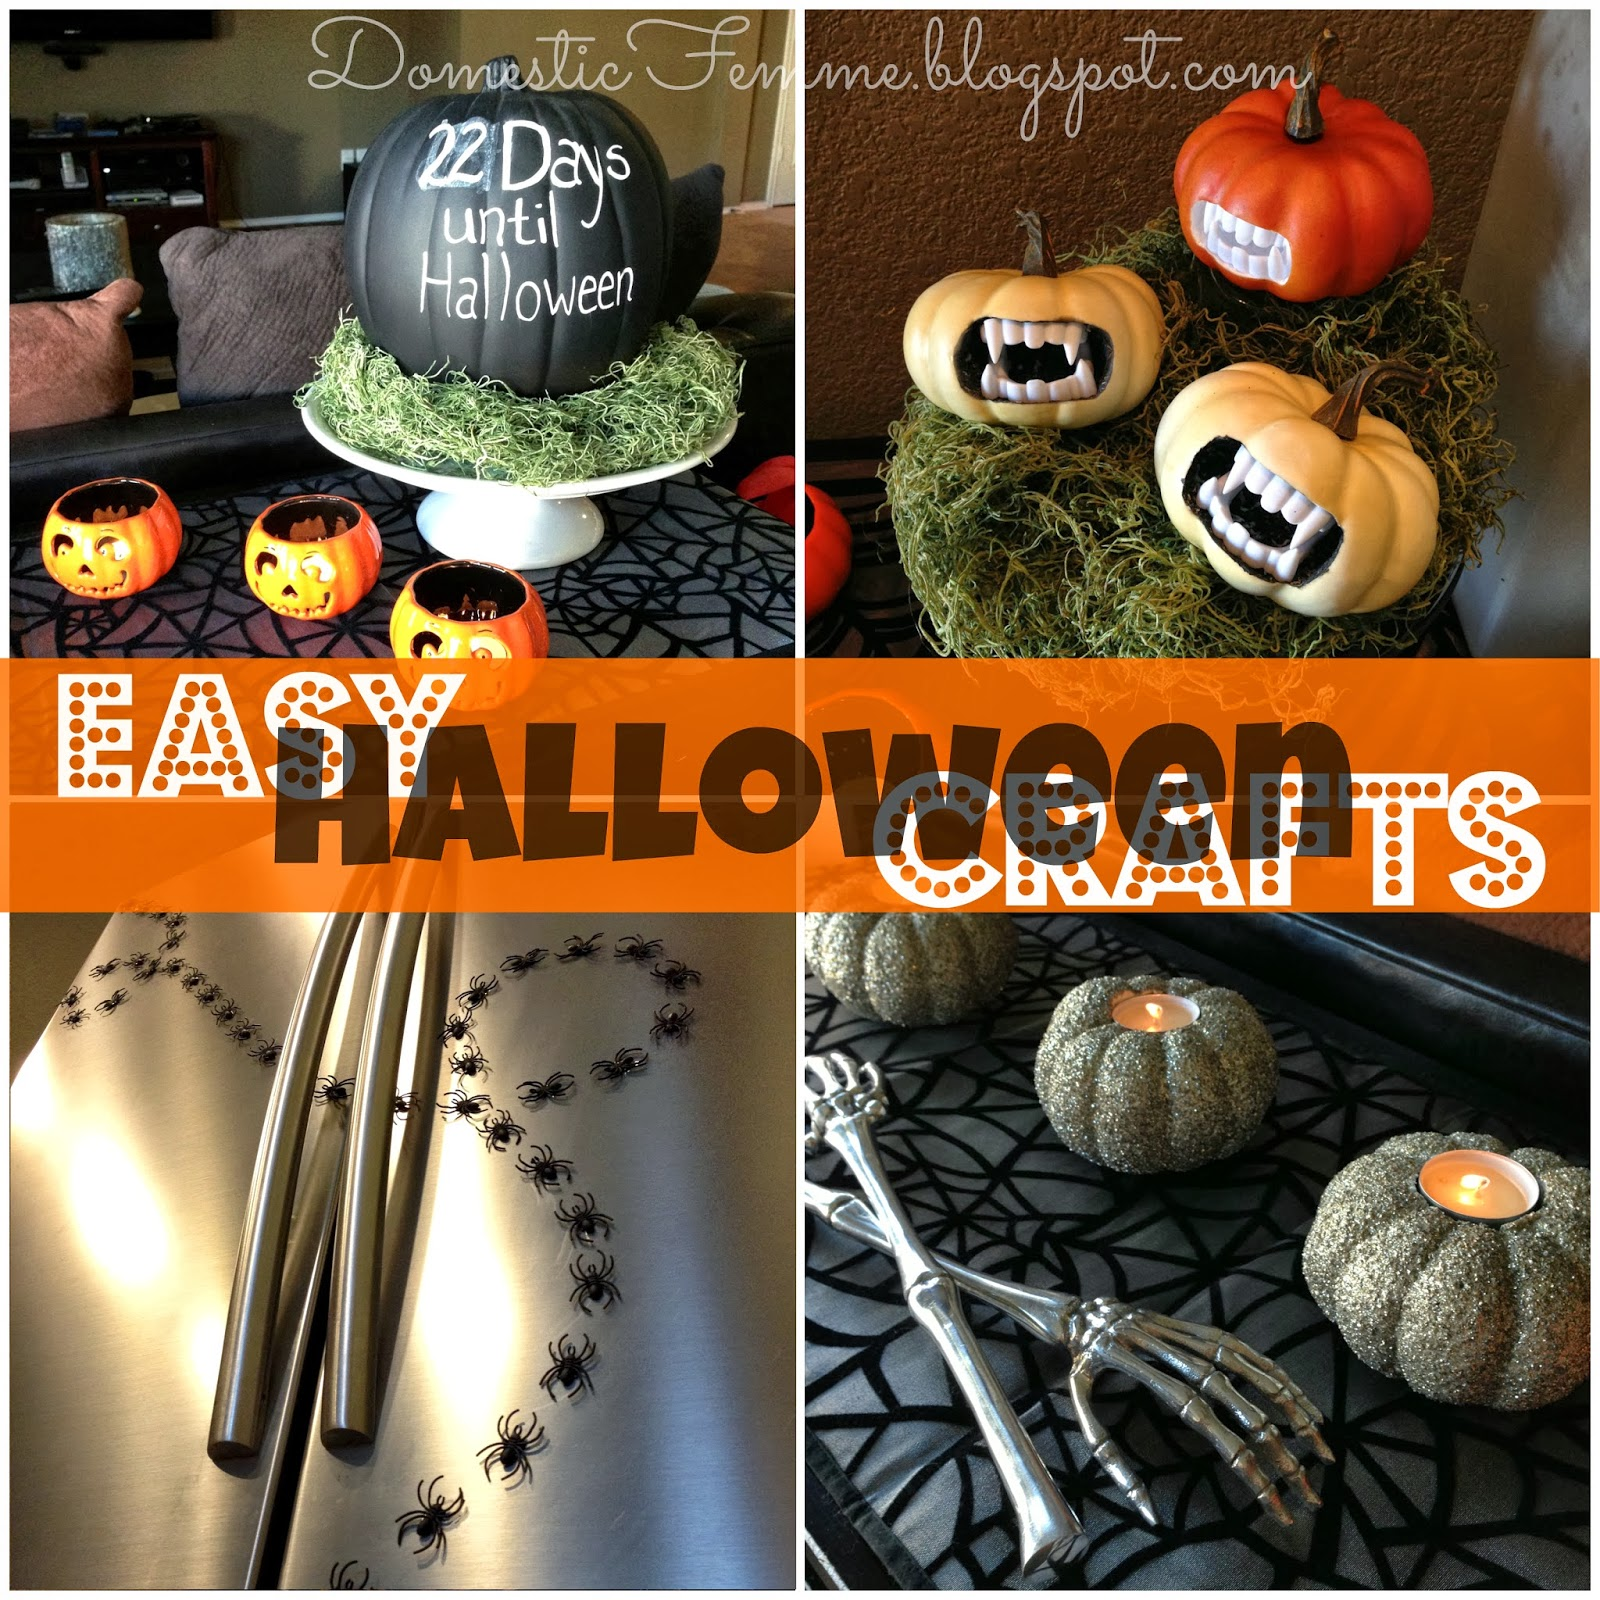 Halloween Crafts And Decorations: Domestic Femme: Easy DIY Halloween Crafts